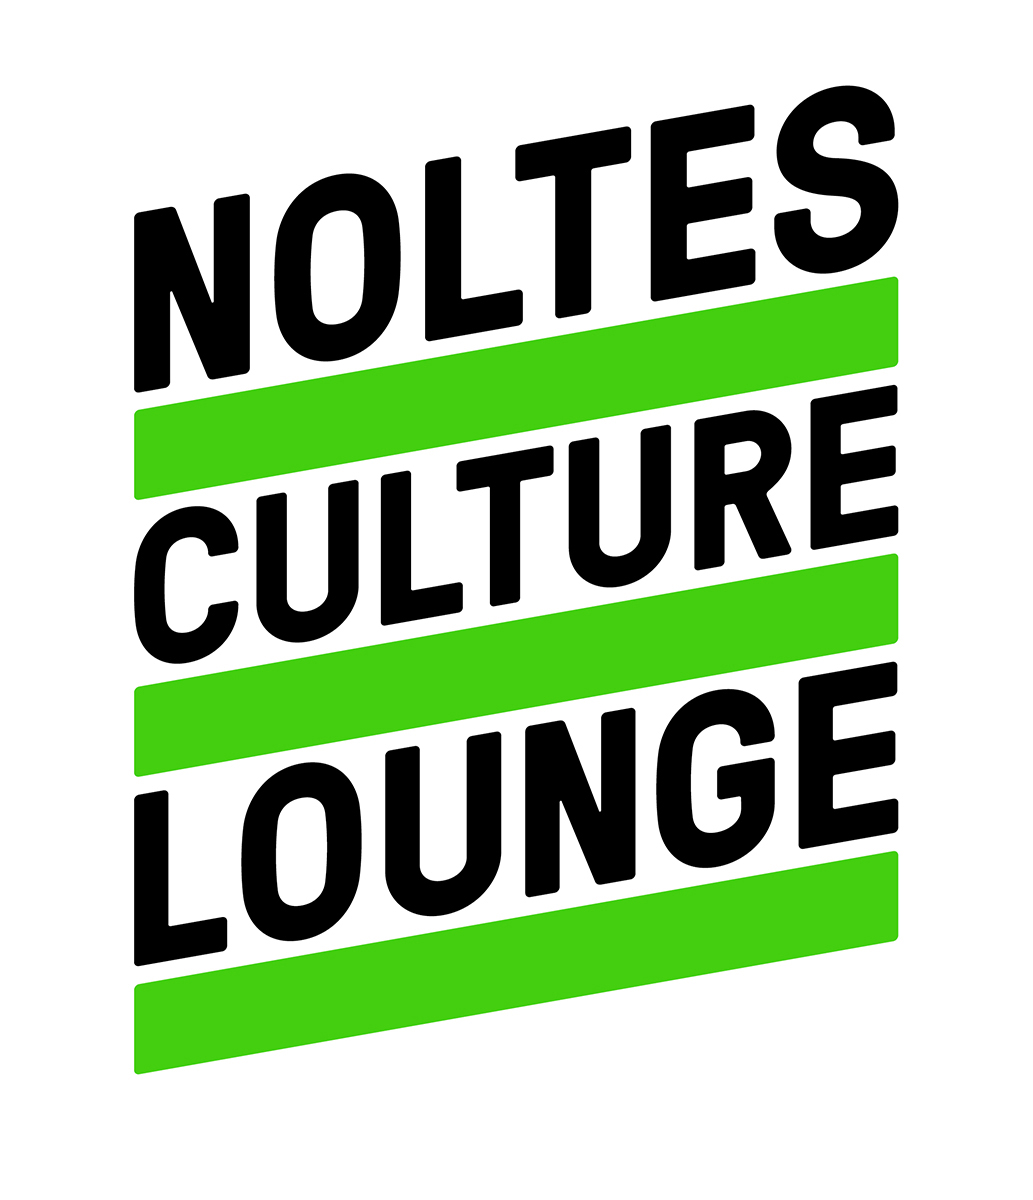 NOLTES CULTURE LOUNGE